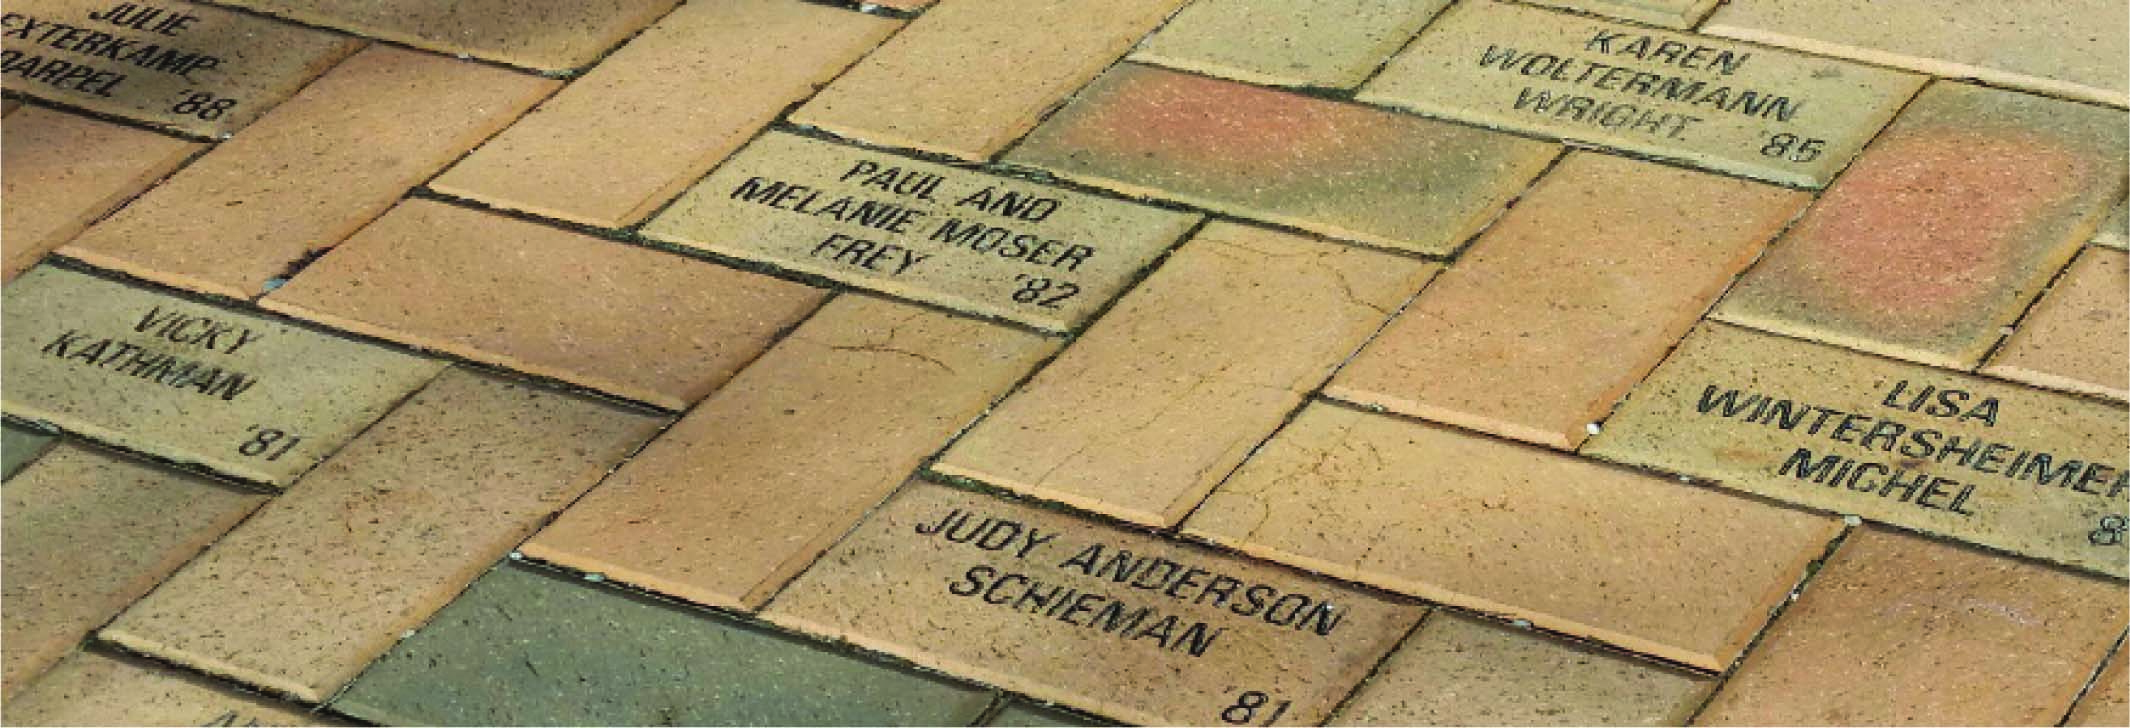 A close up of a brick walkway showing various commemorative bricks donated from different years.